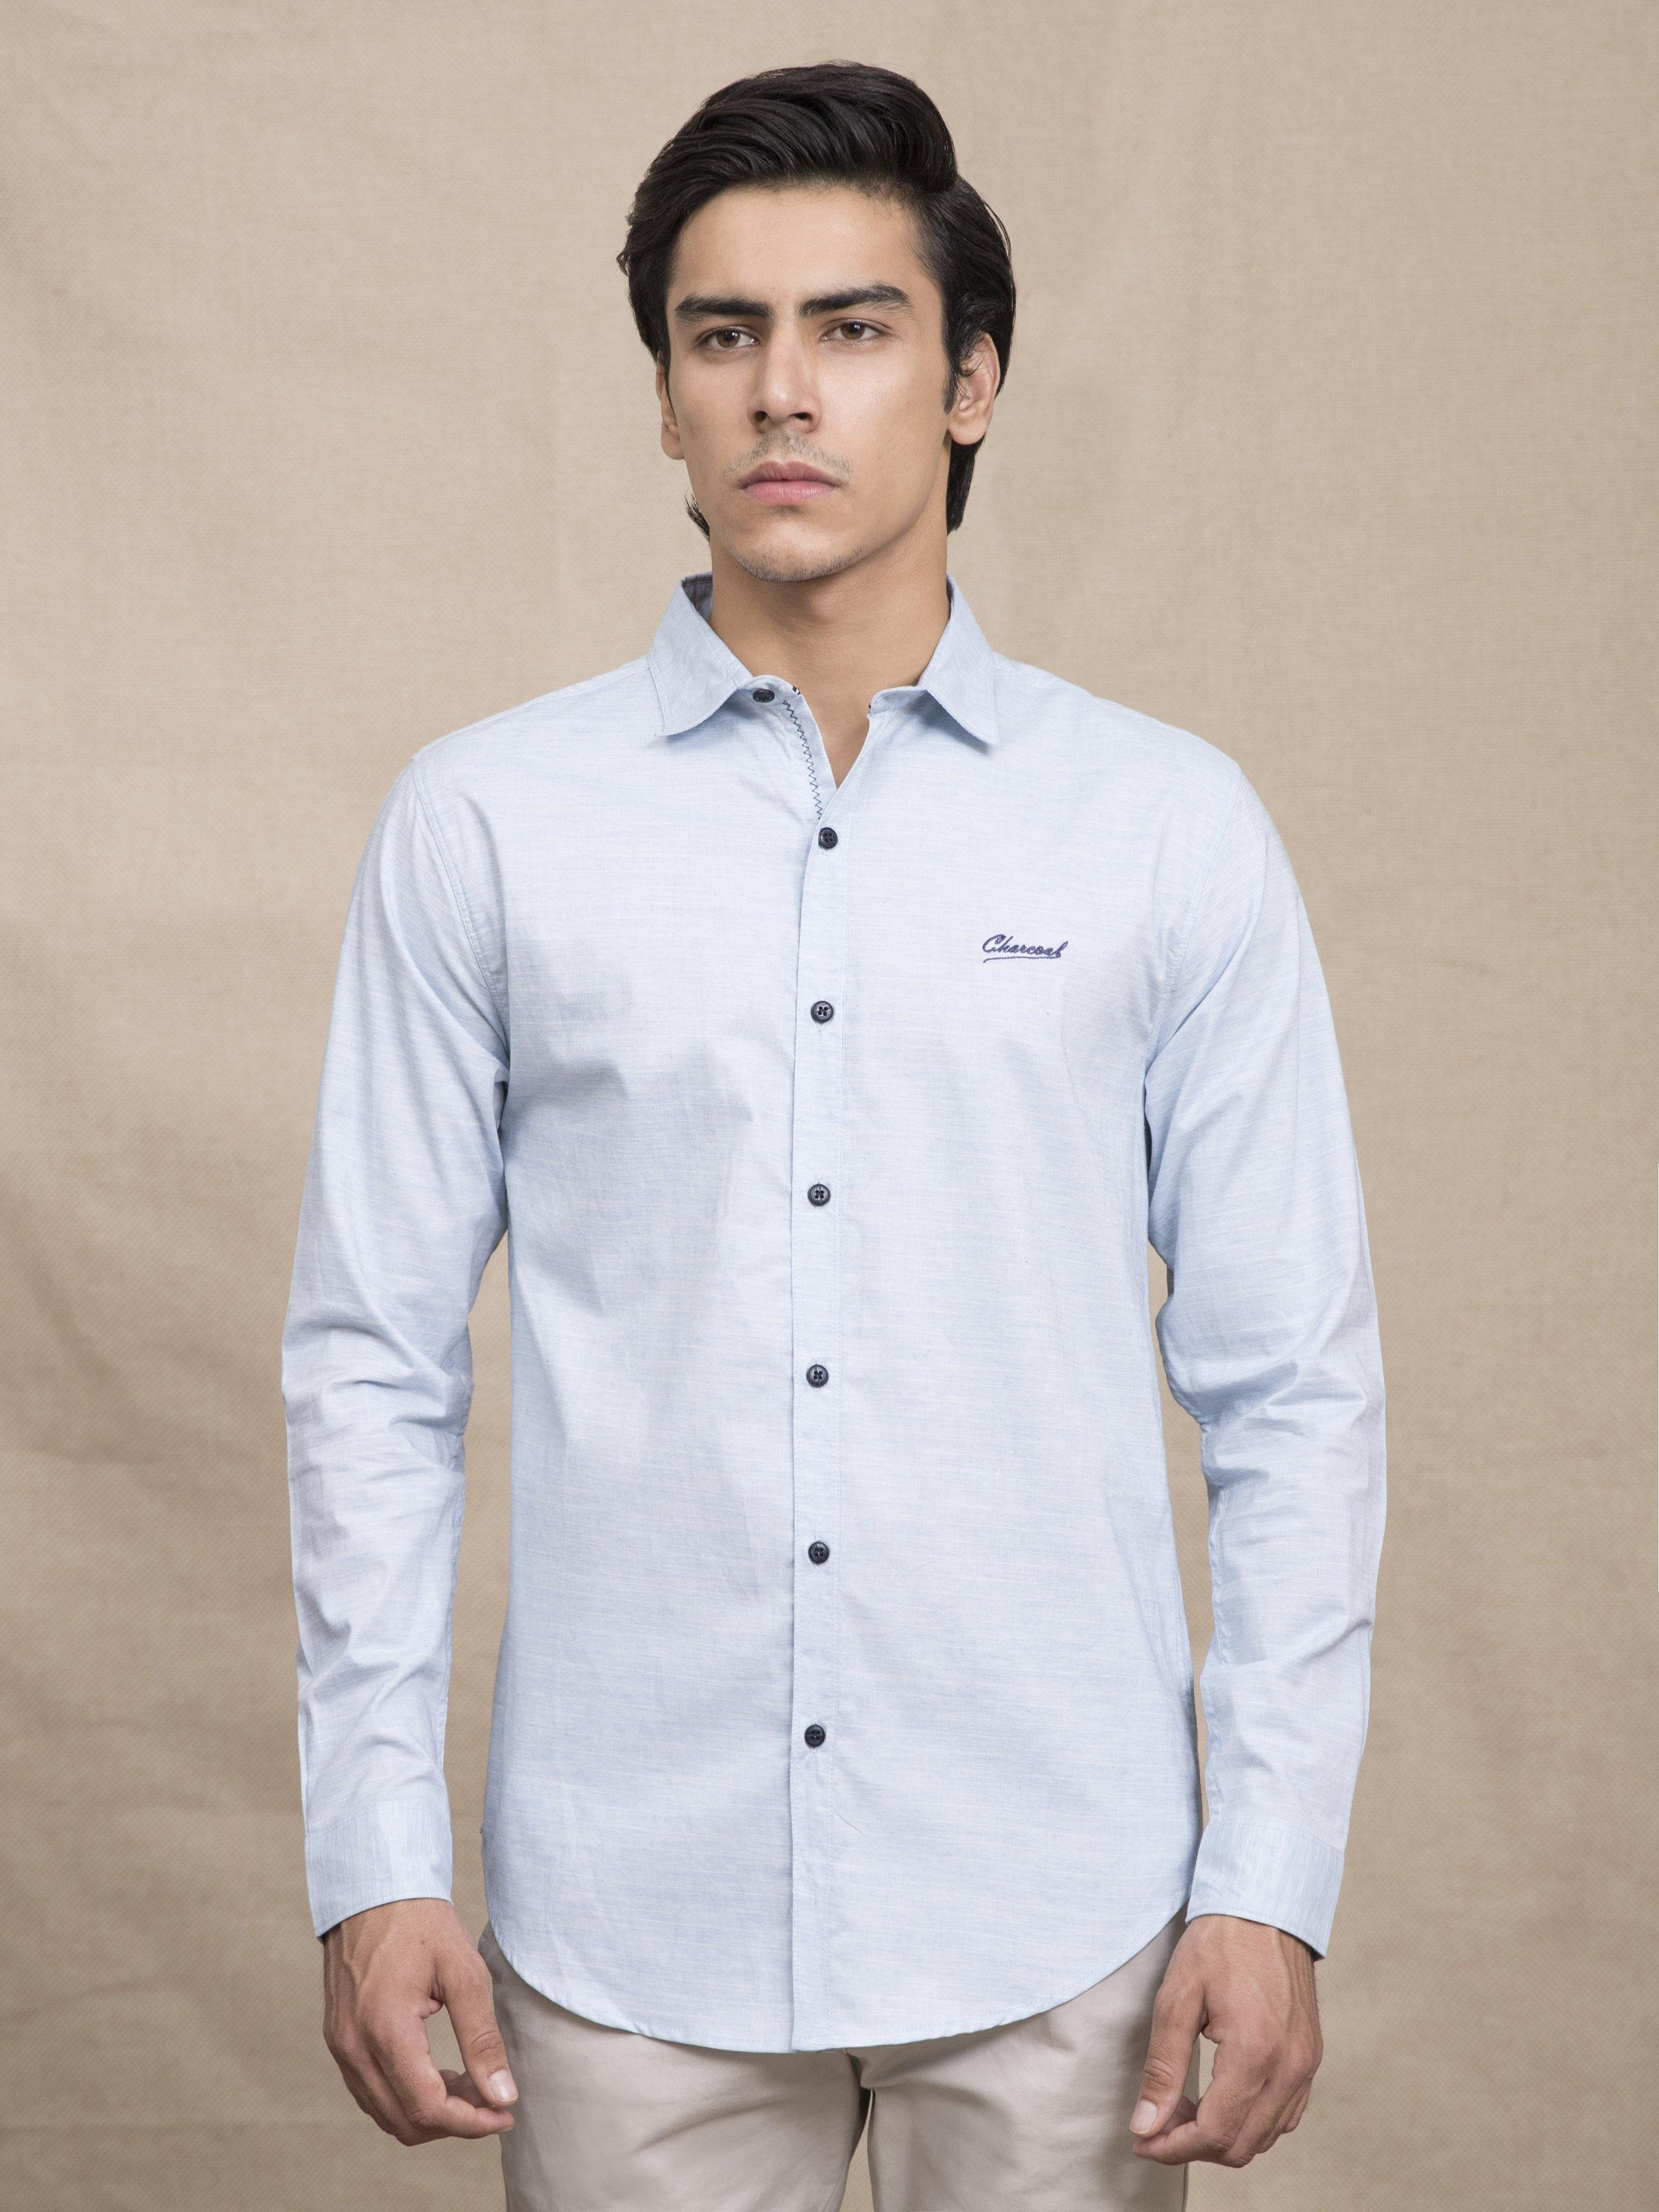 CASUAL SHIRT SKY BLUE - Charcoal Clothing